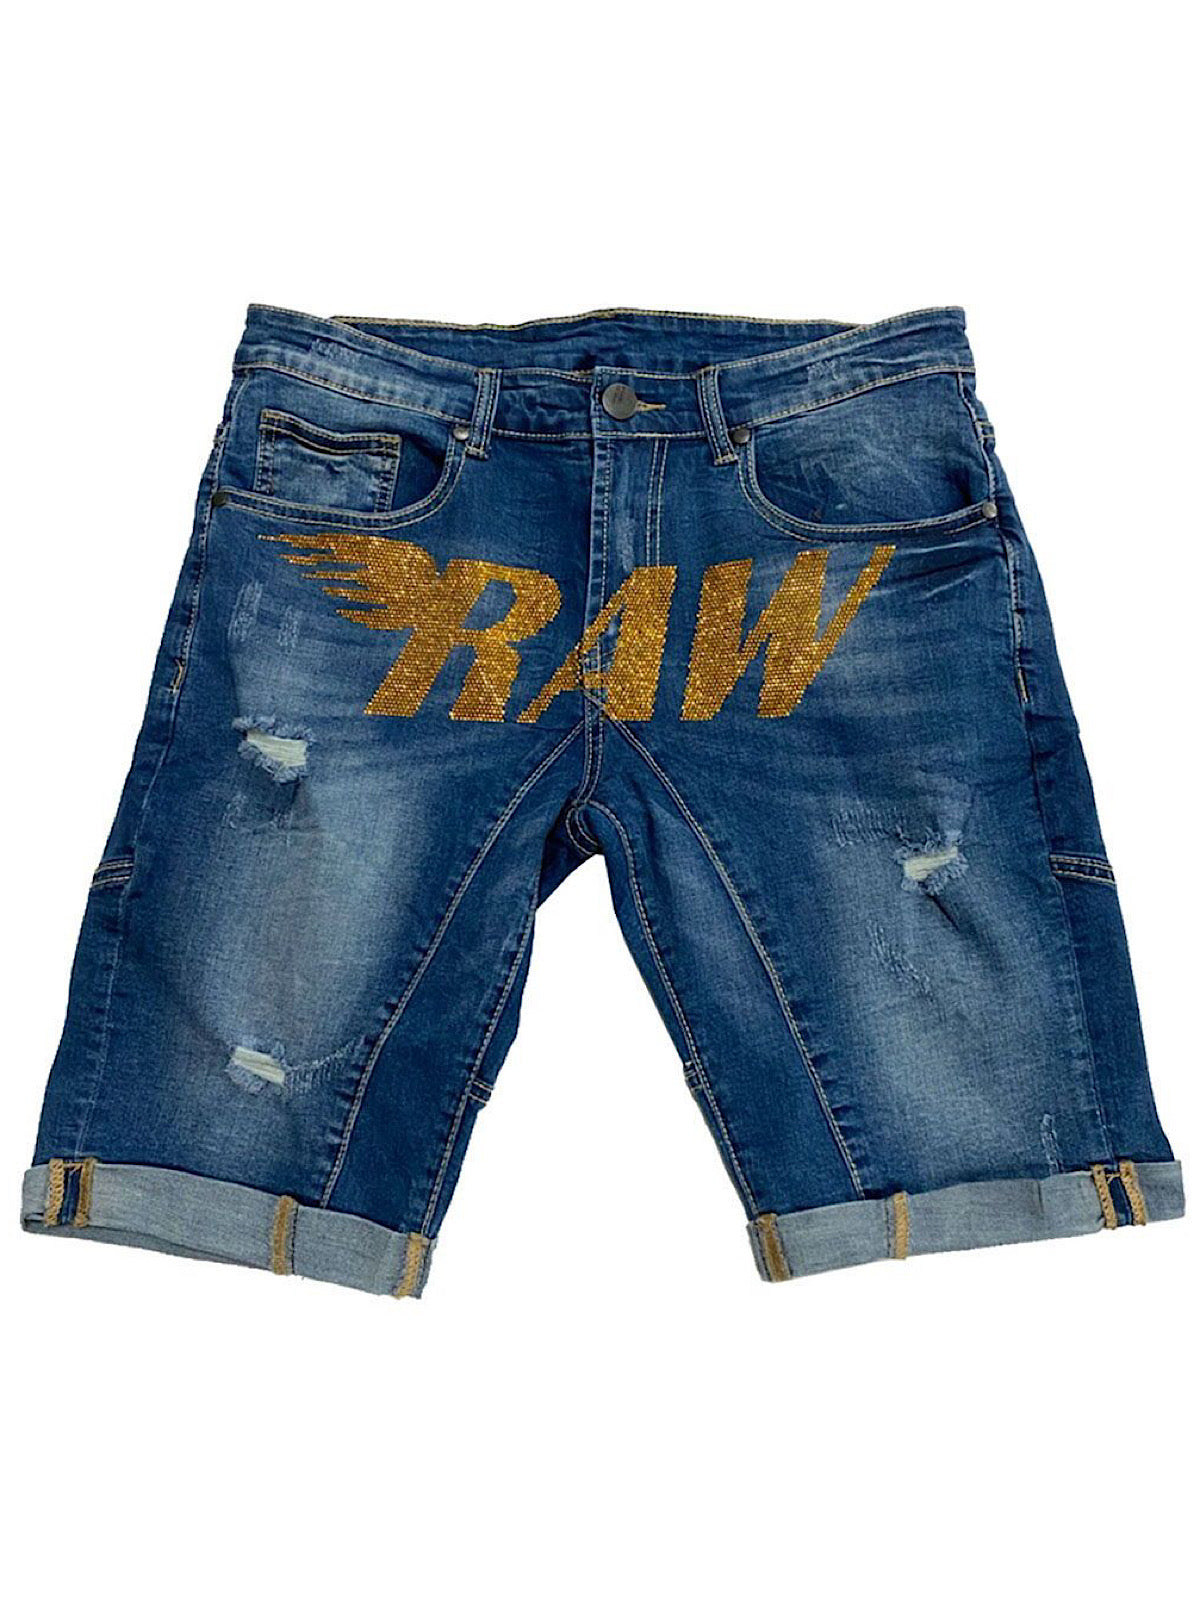 Rawyalty Denim Shorts - Stones - Gold on Blue